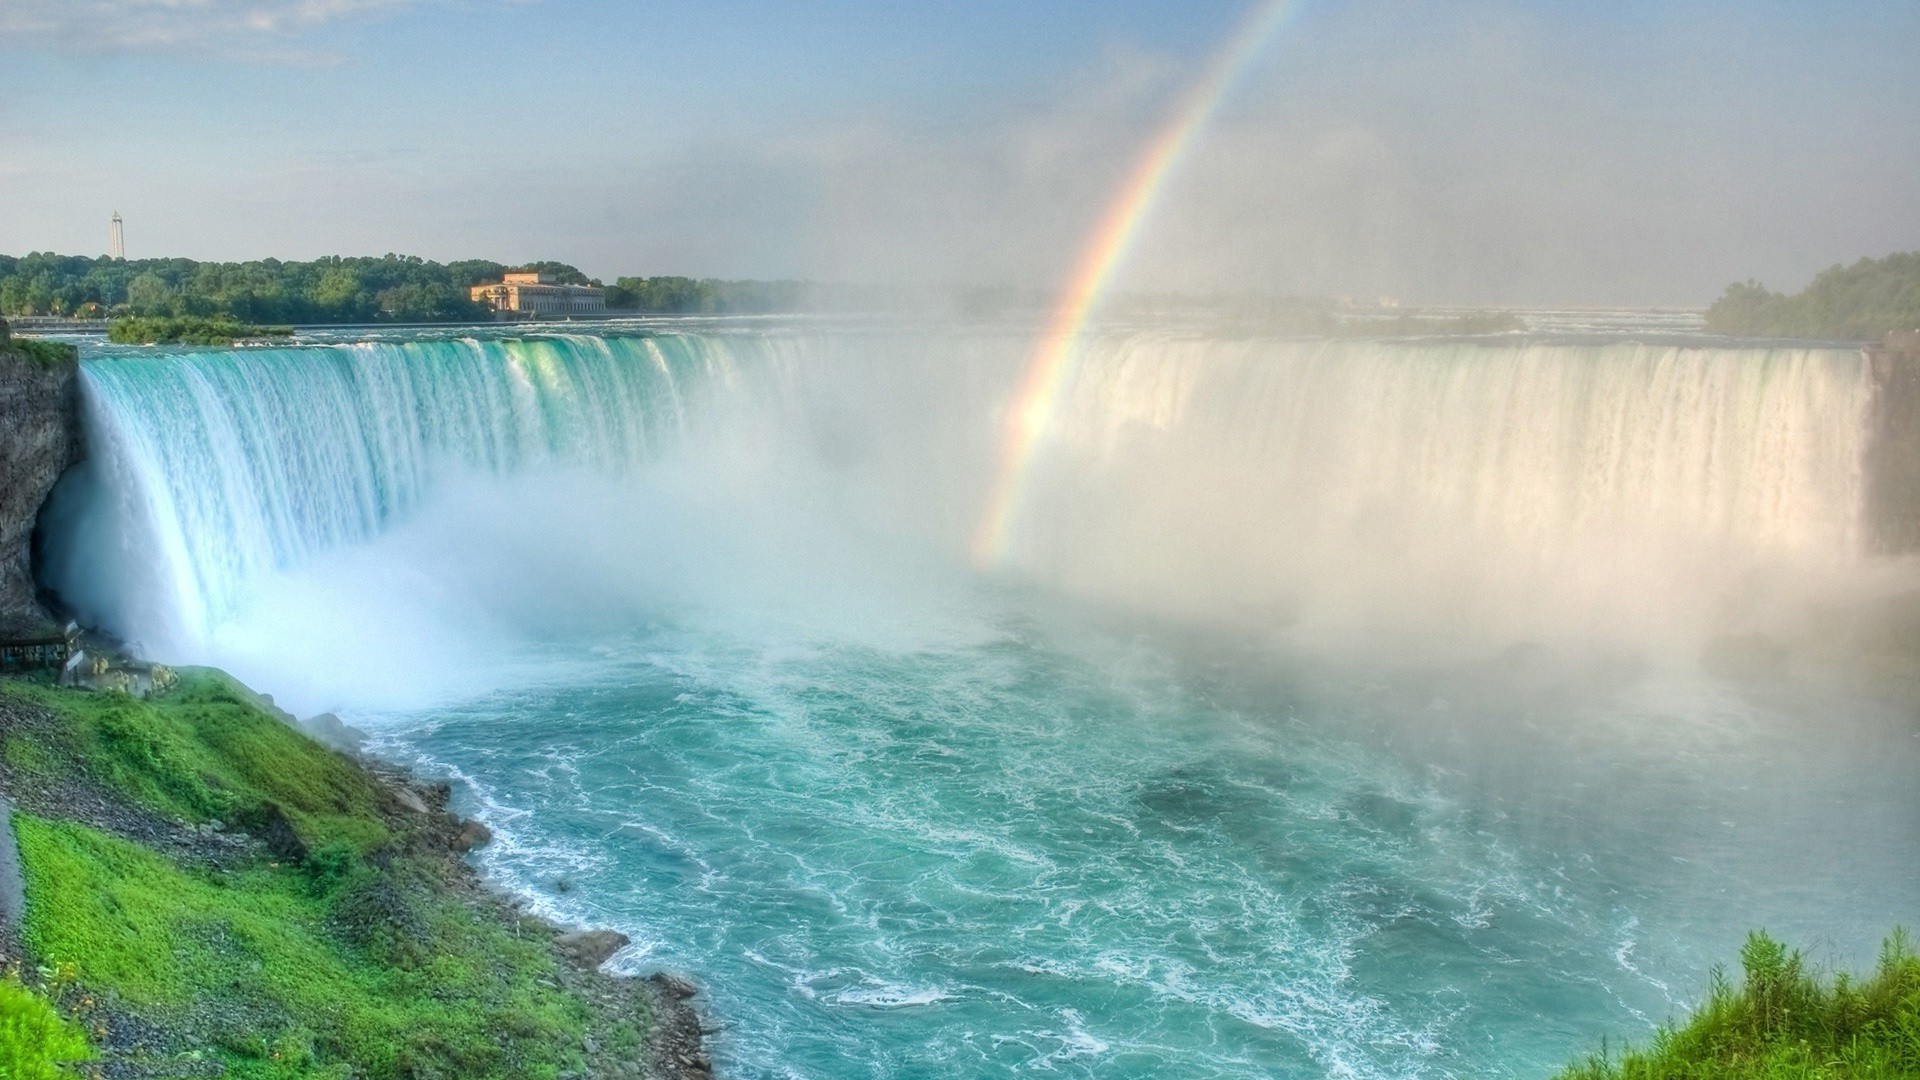 waterfalls water rainbow waterfall landscape travel nature spray summer surf outdoors seashore river recreation motion beach sky